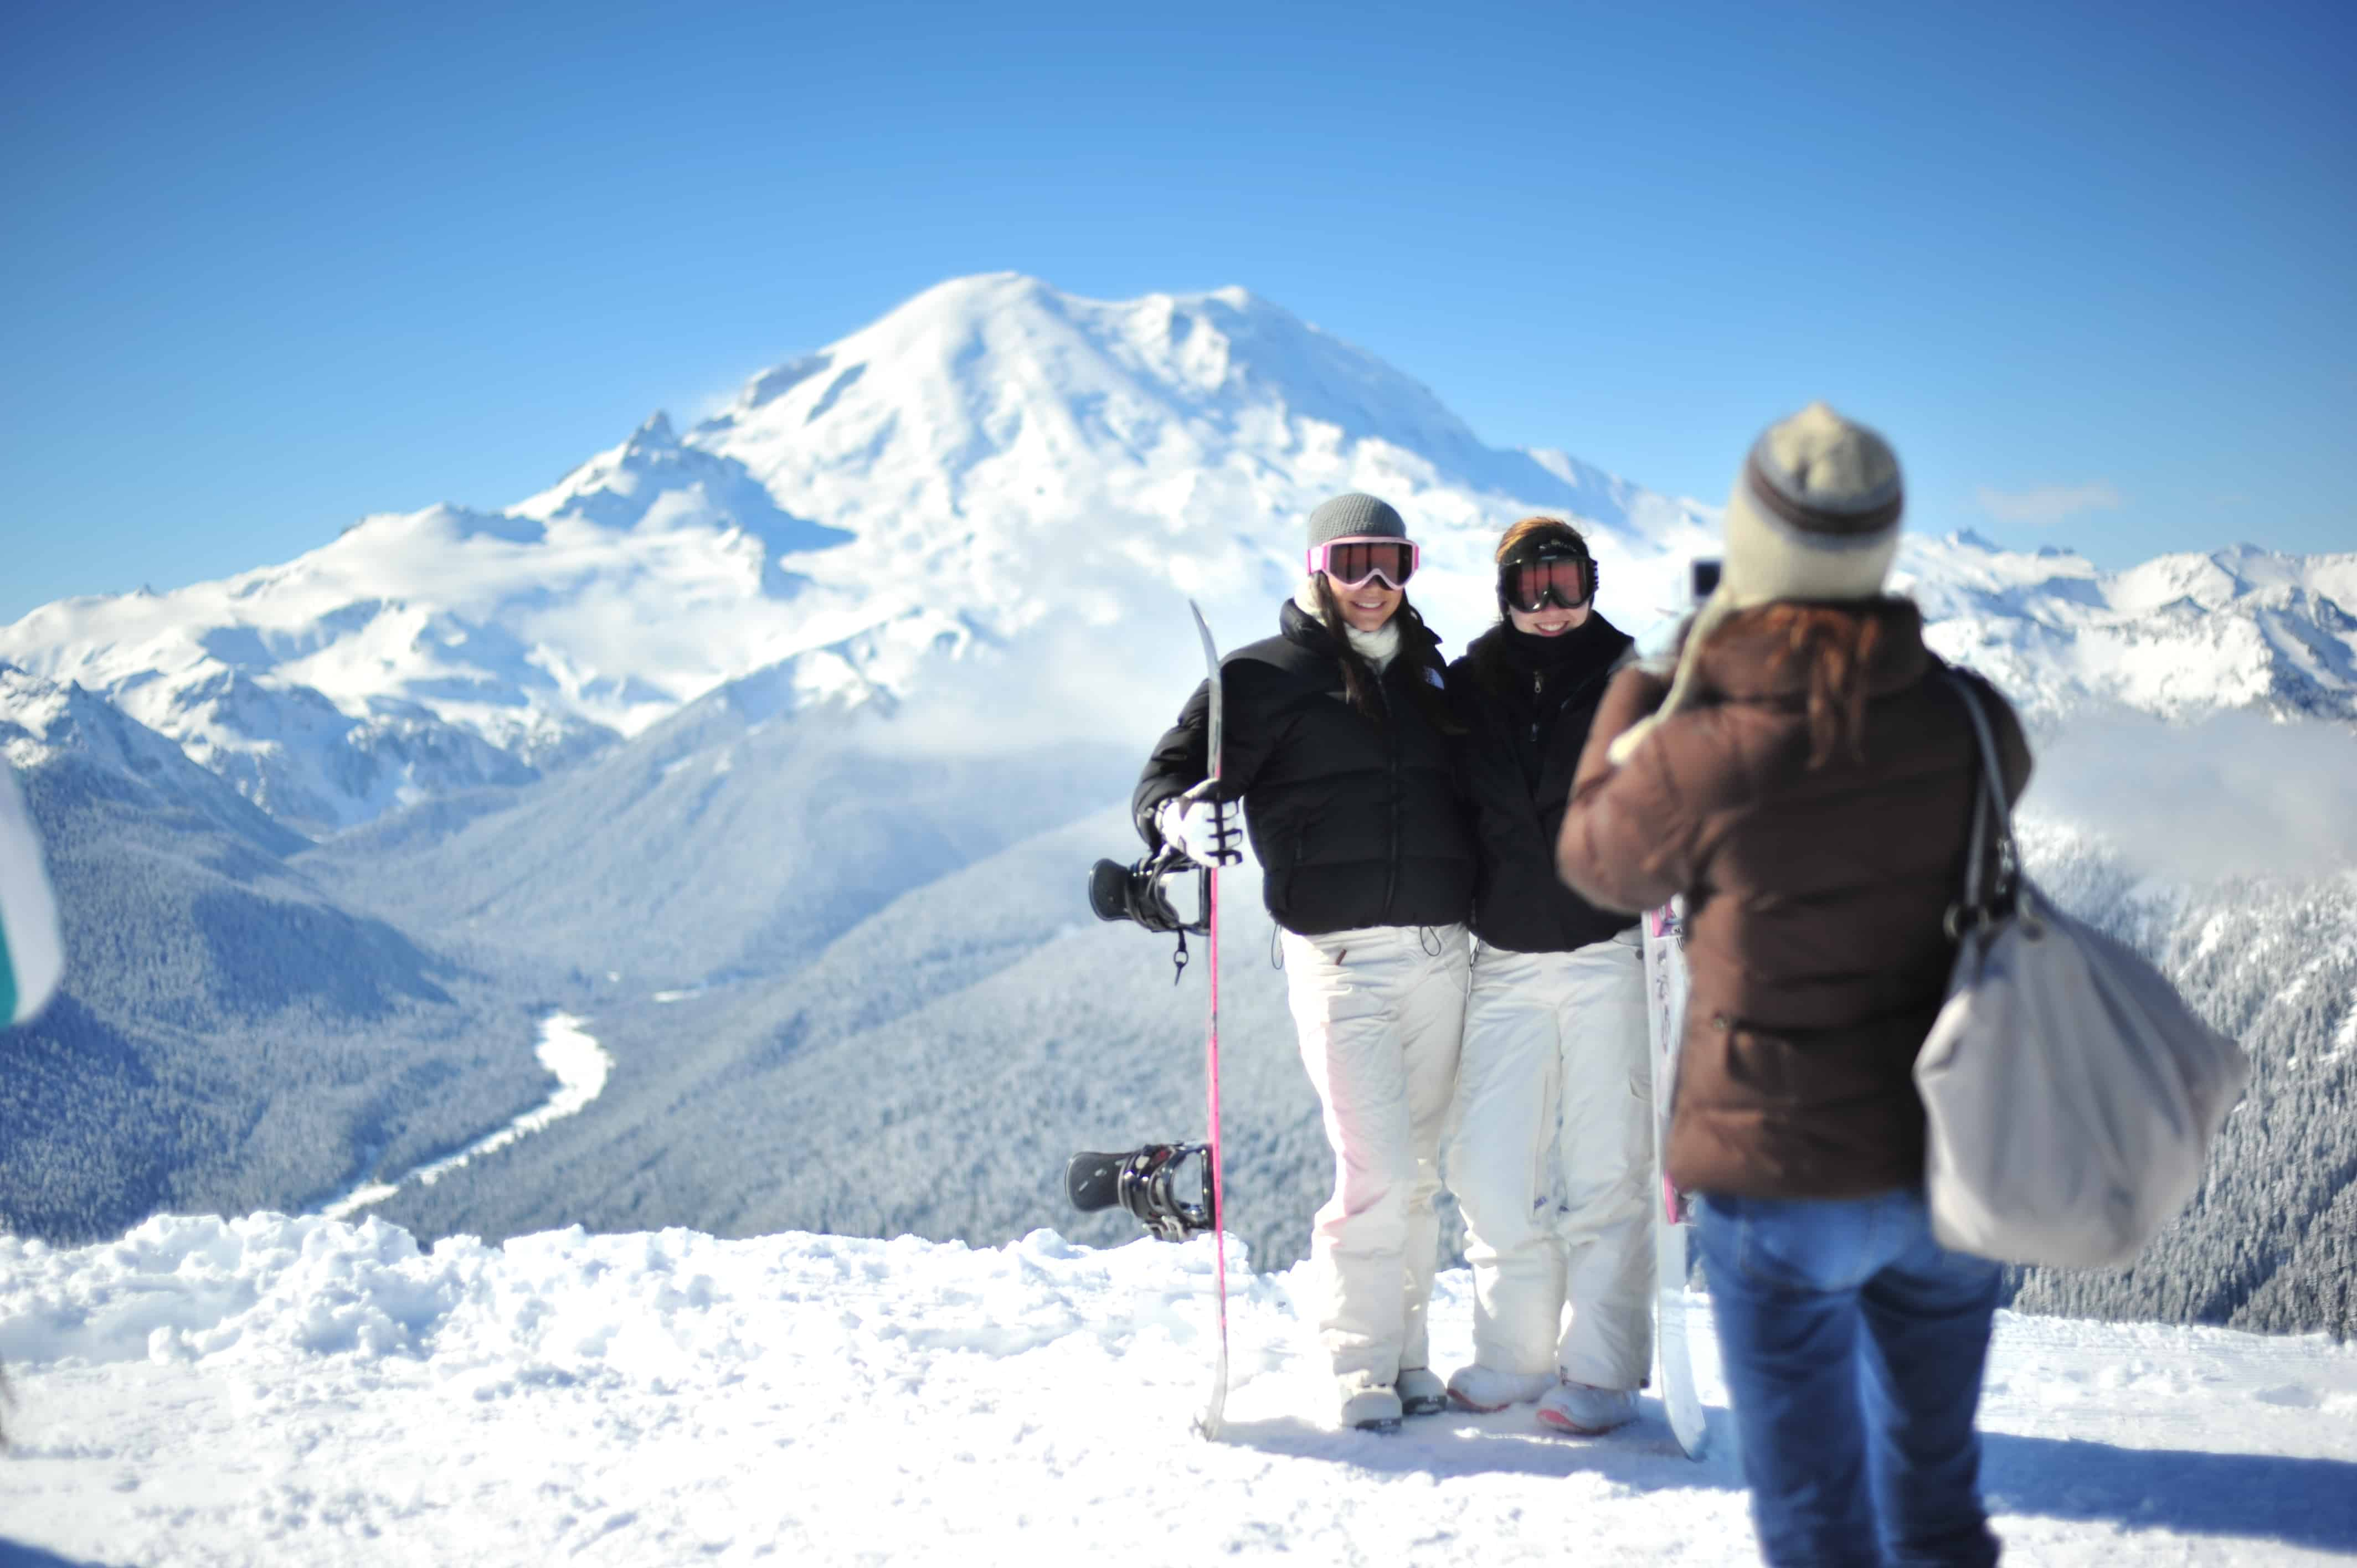 crystal mountain resort a pnw winter playground | visit rainier